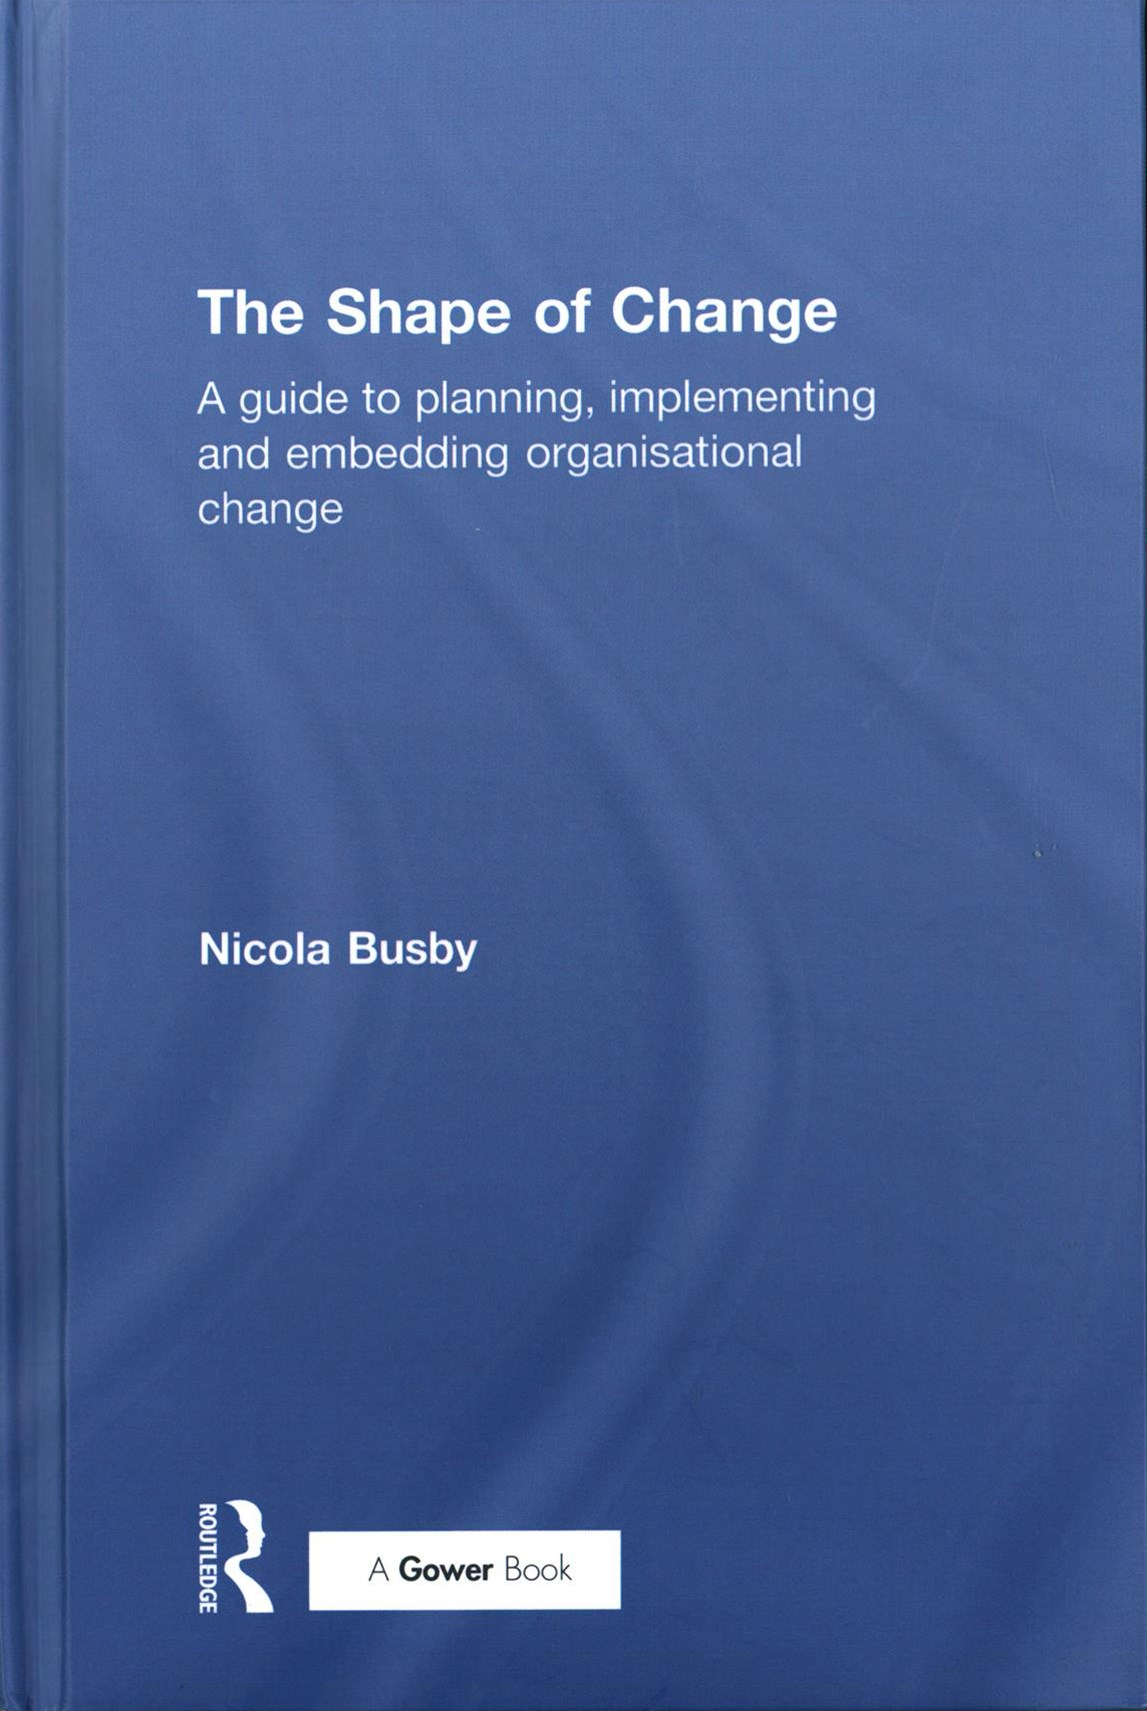 The Shape of Change